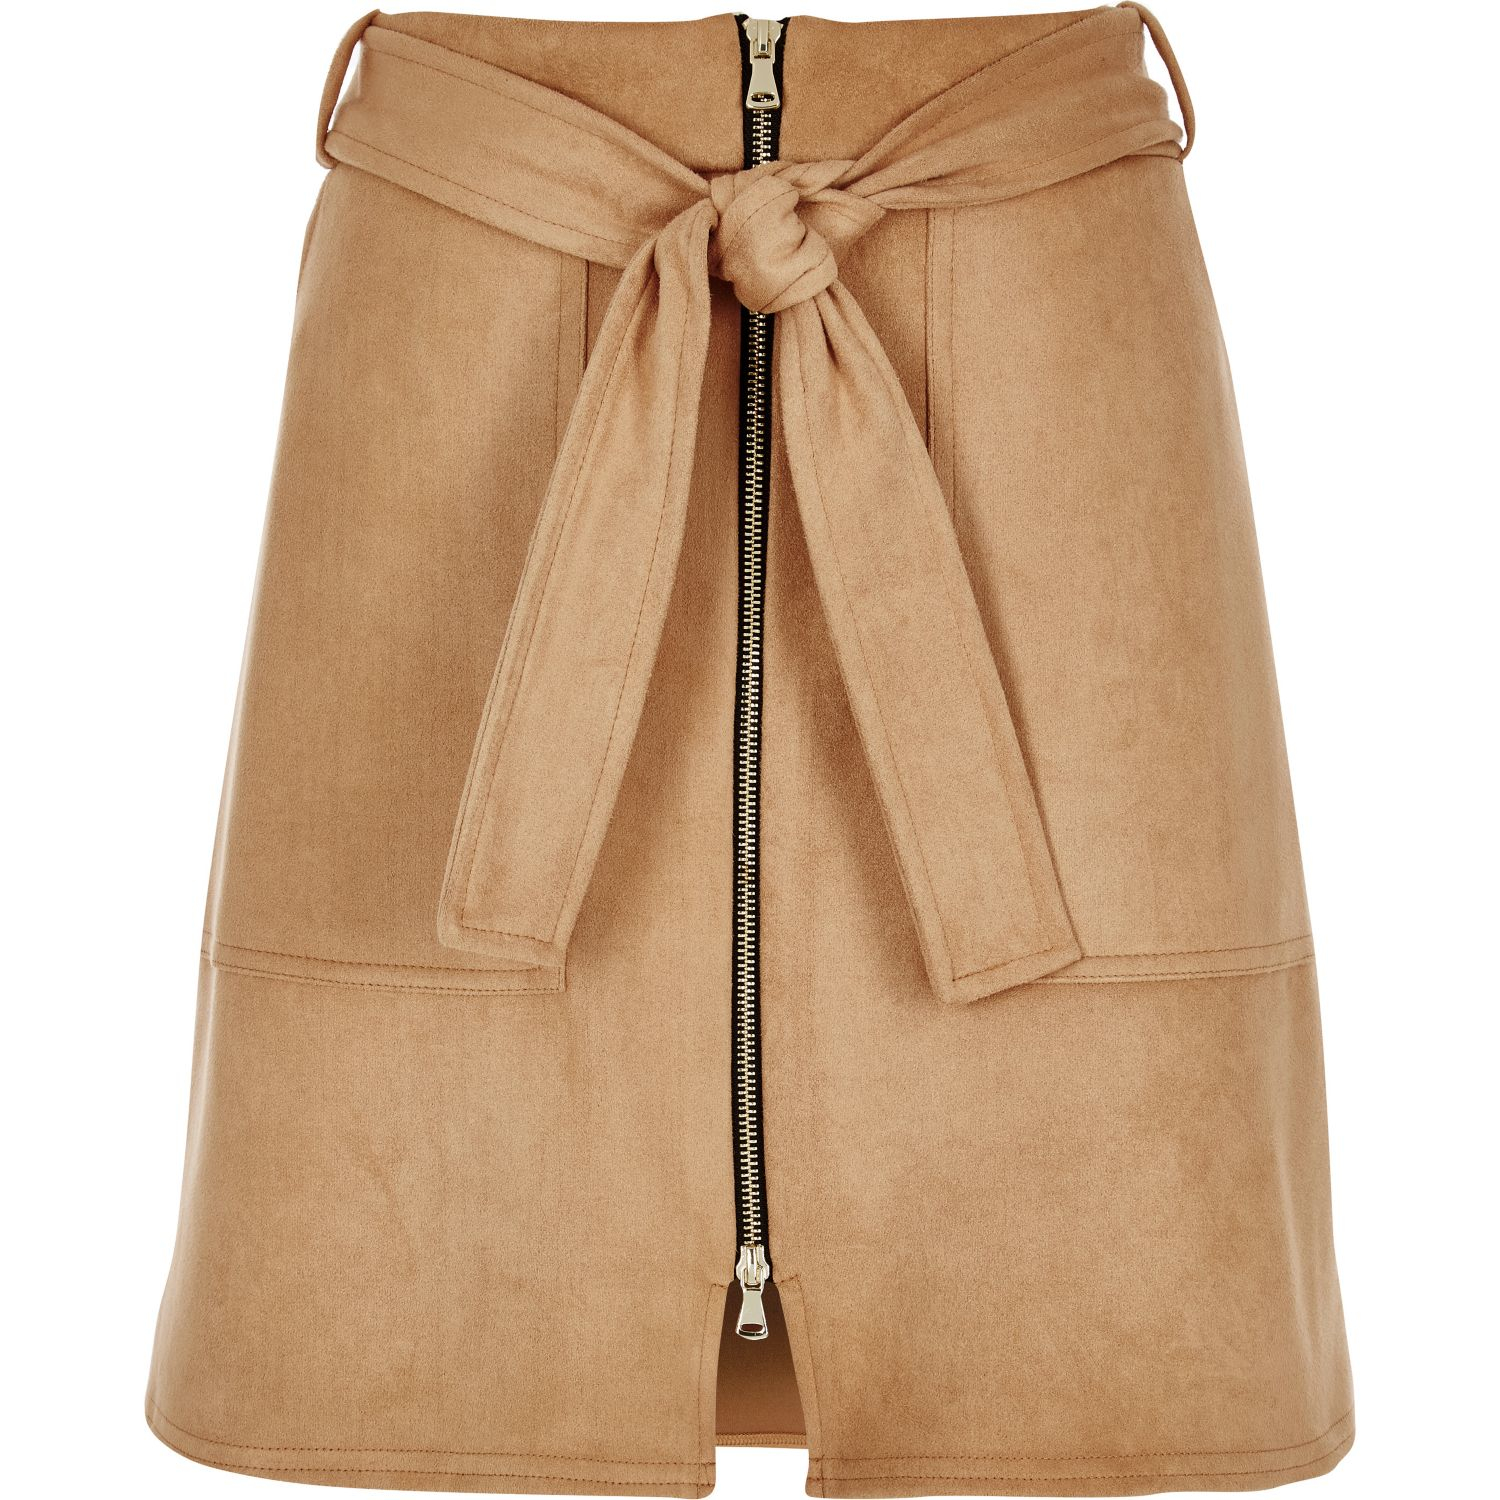 River island Tan Faux Suede Zip-up A-line Skirt | Lyst